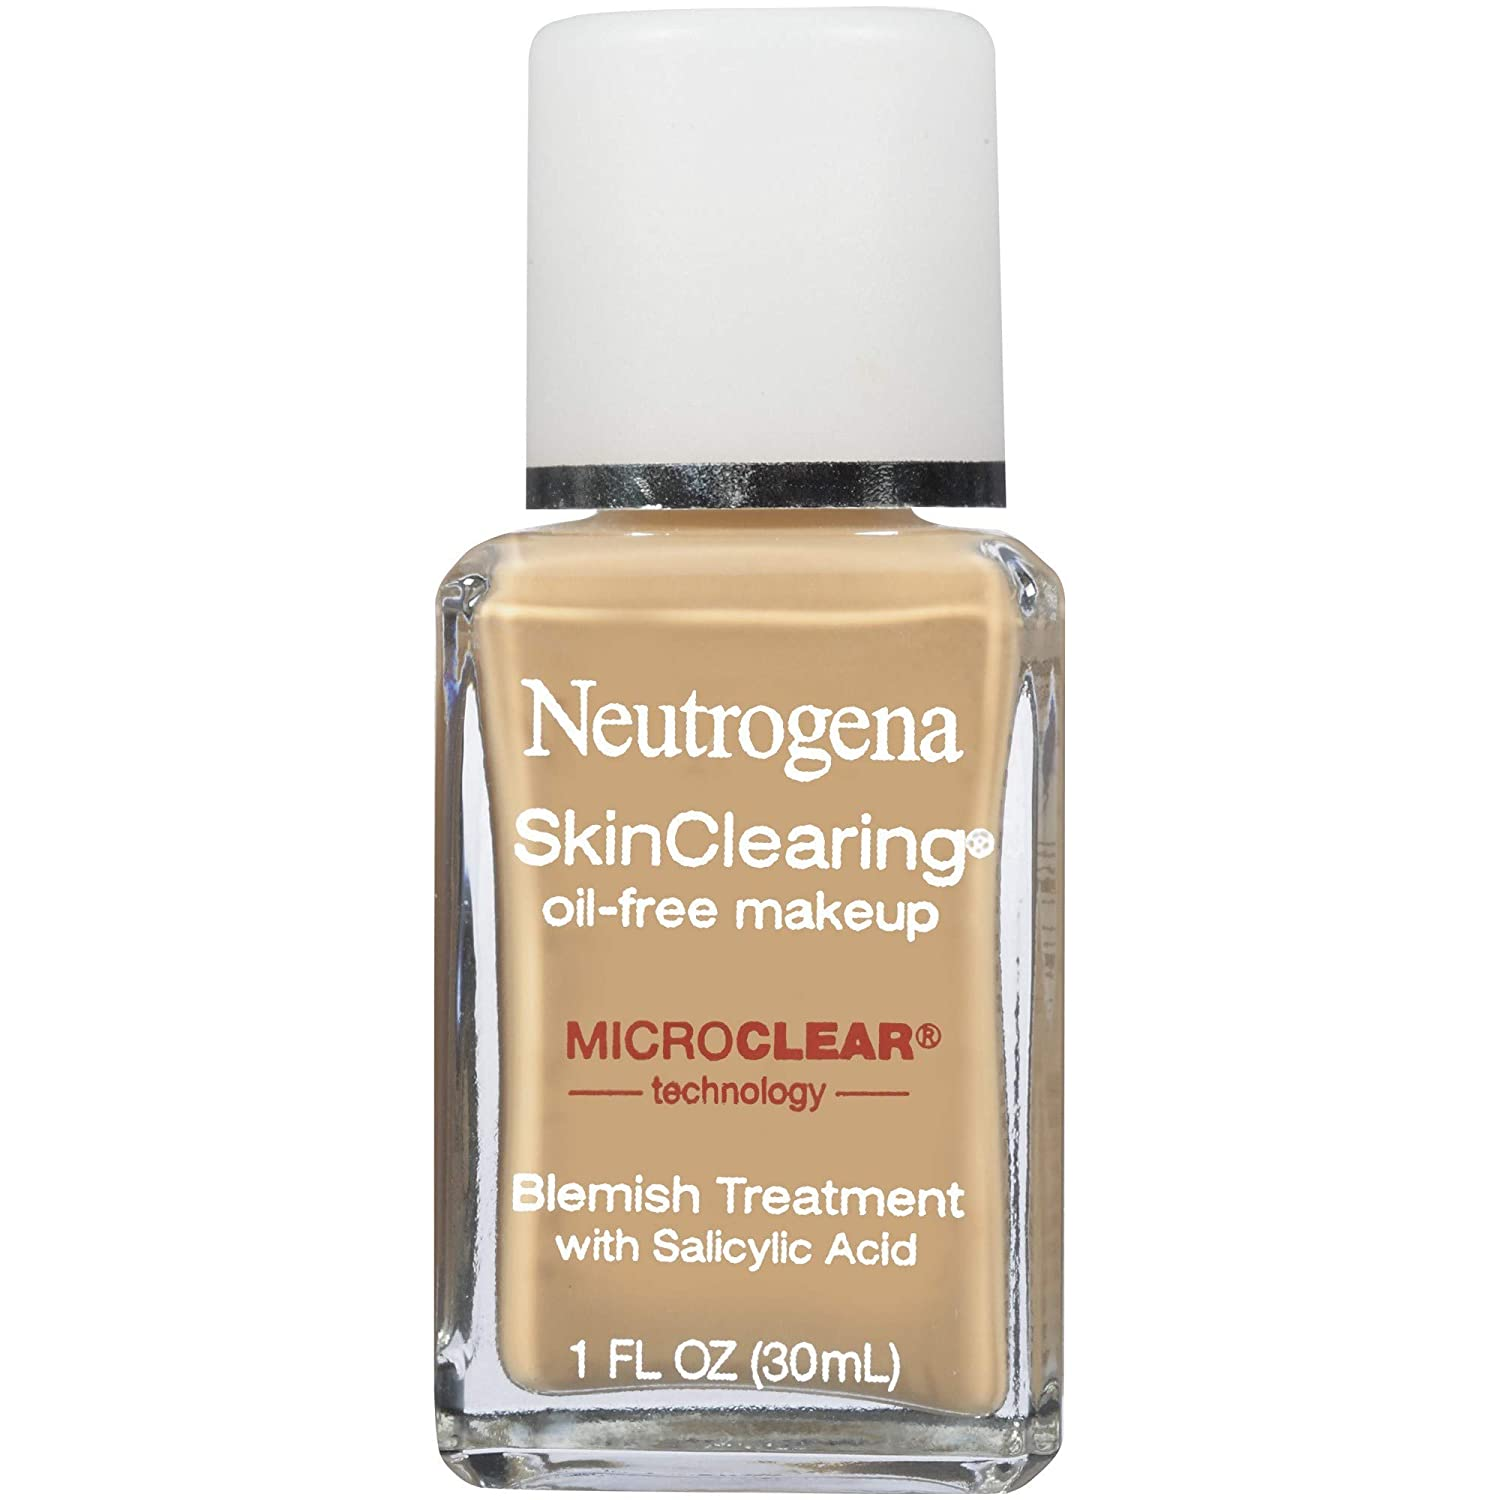 Neutrogena Skinclearing Makeup, 60 Natural Beige, 1 Fl. Oz.